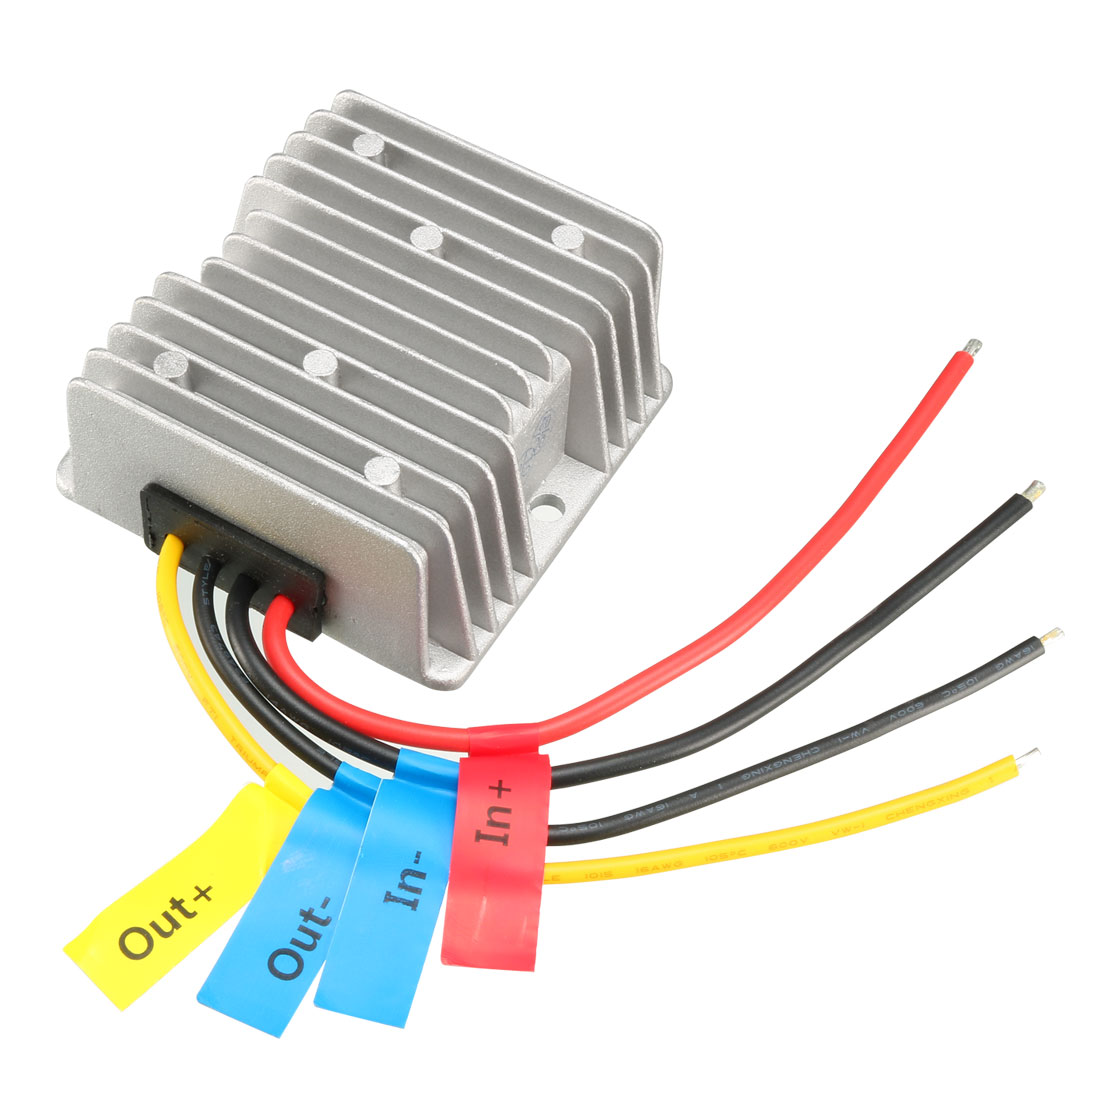 uxcell Power Converter Regulator DC 12V(10V~30V) Step-Up to DC 48V 2.1A 100W Waterproof Voltage Convert Transformer